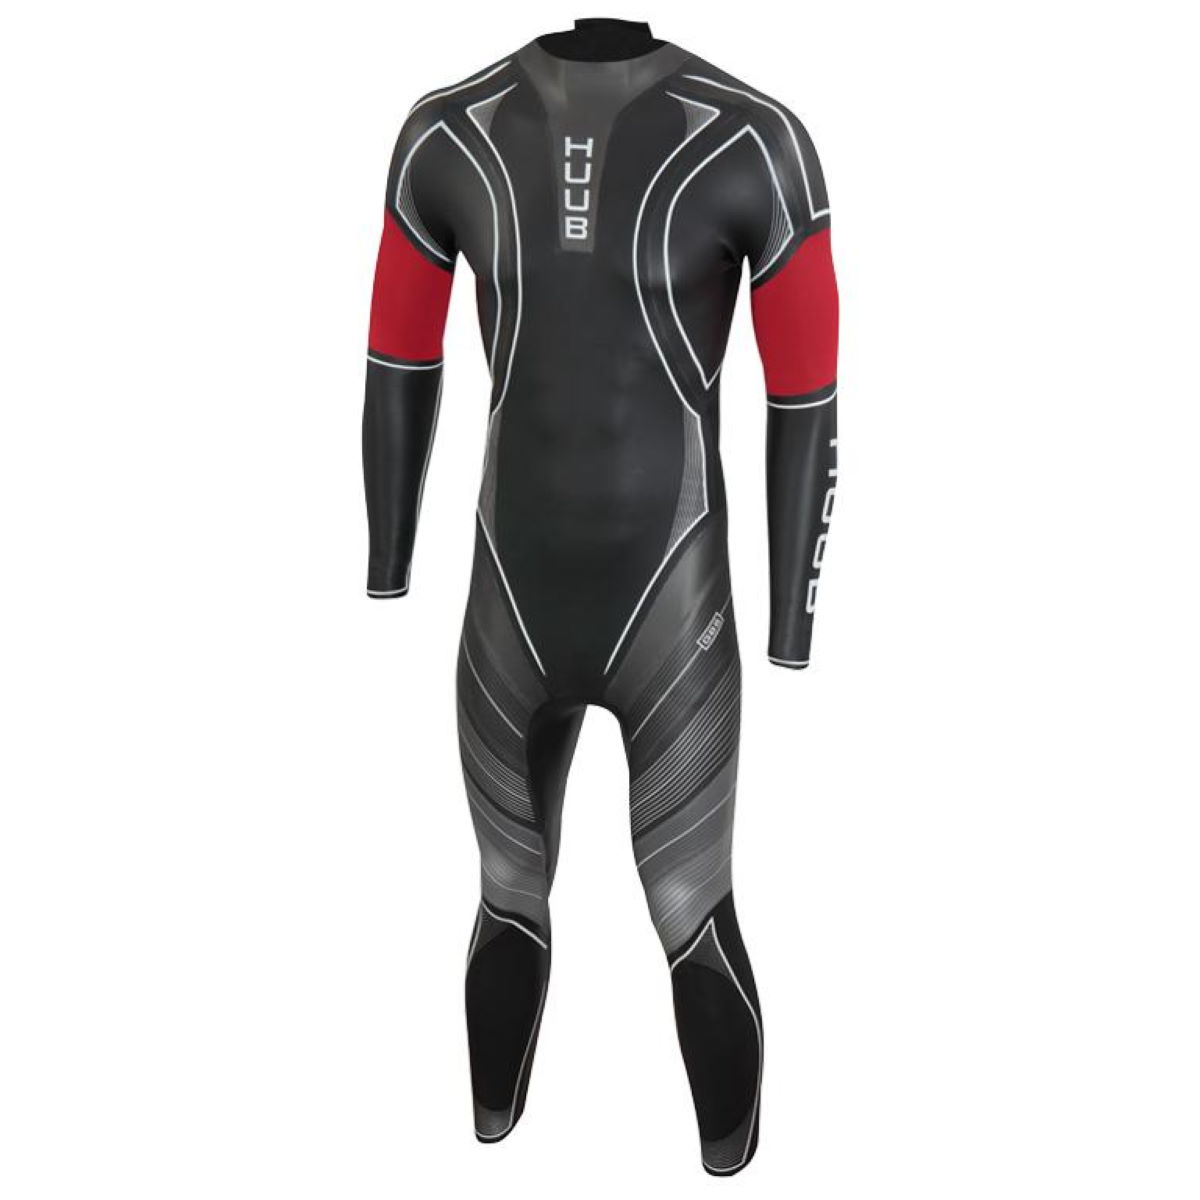 HUUB ARCHIMEDES III 3:5 - Medium Large Black/Red | Wetsuits